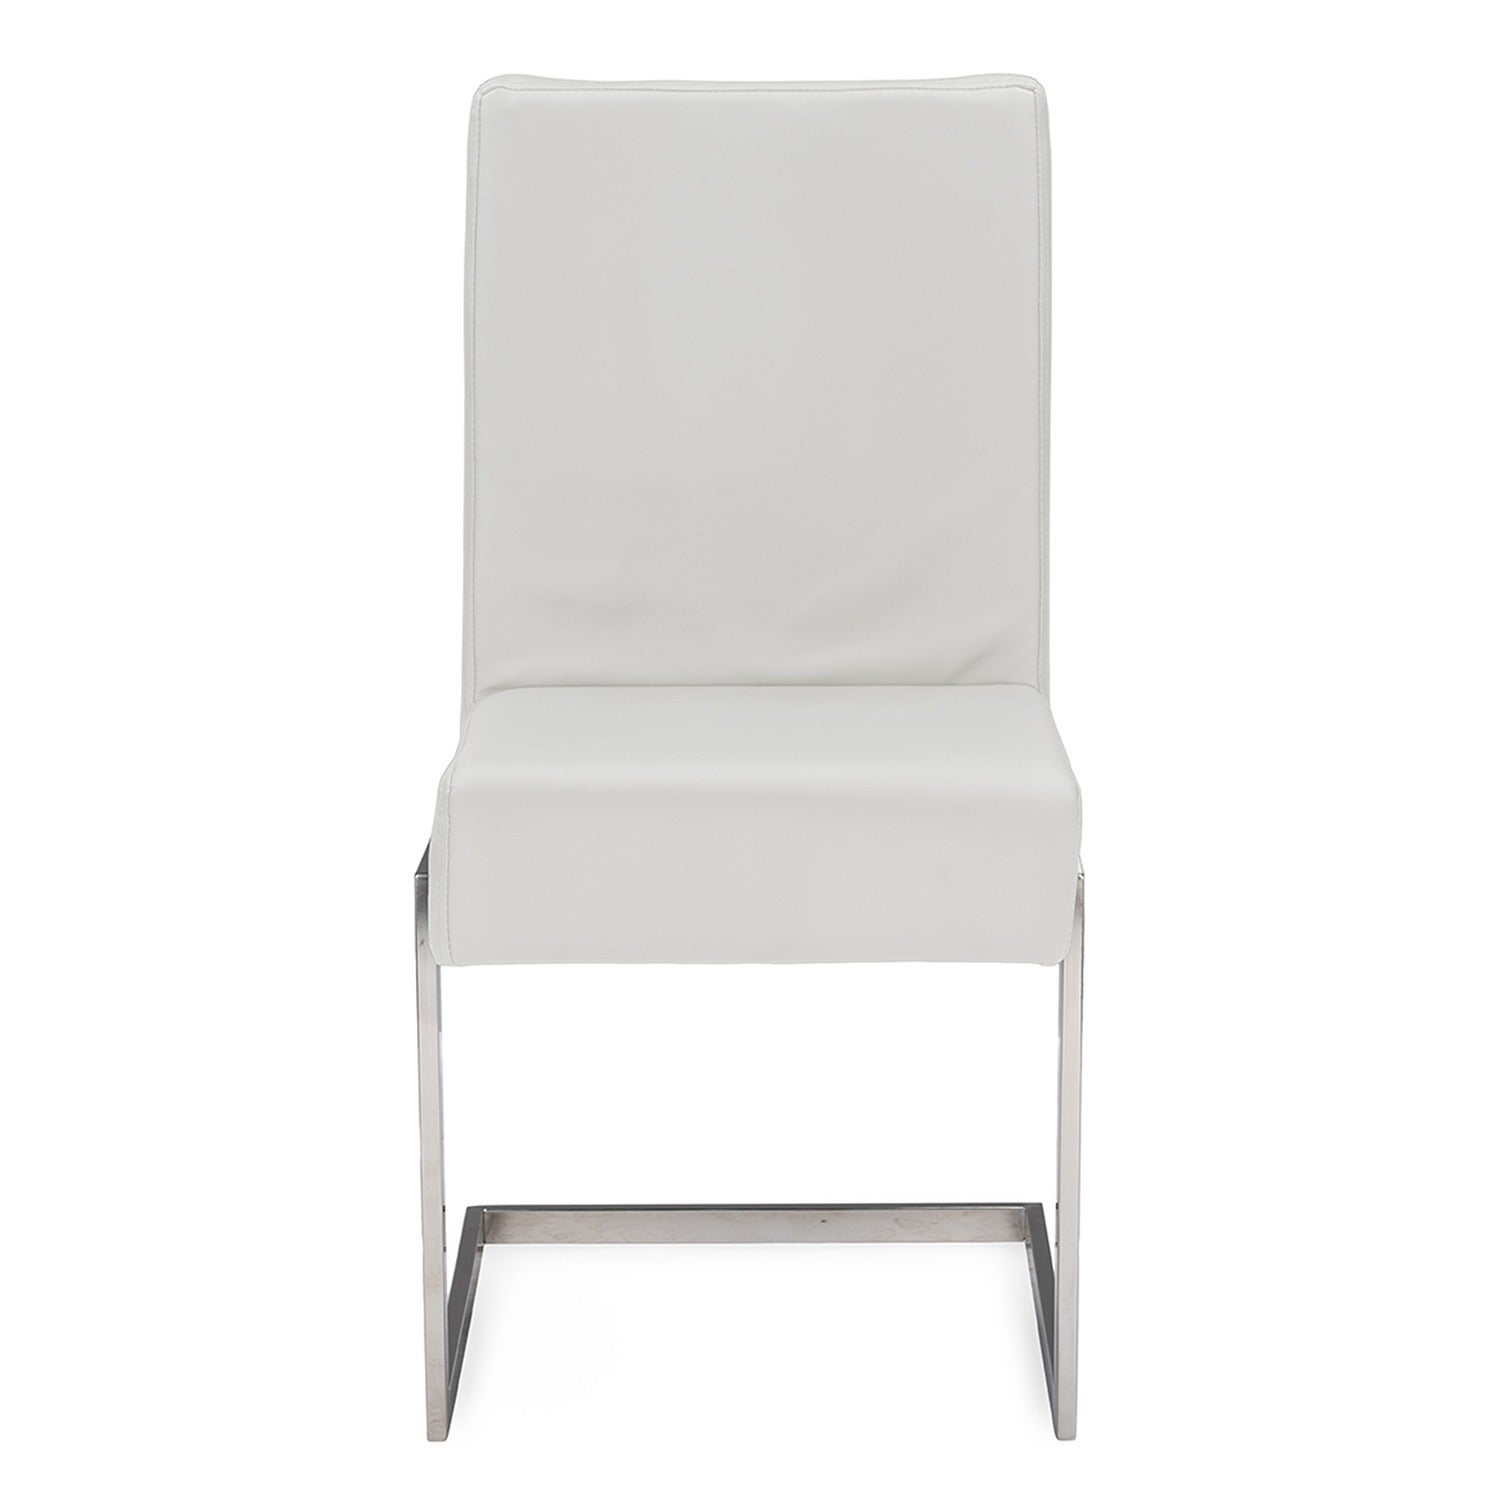 Contemporary white dining chairs Thetastingroomnyc Shop Set Of Greer Contemporary White Pu Leather Upholstered Armless Dining Chairs With Stainless Steel Base Free Shipping Today Overstock 10315297 Overstockcom Shop Set Of Greer Contemporary White Pu Leather Upholstered